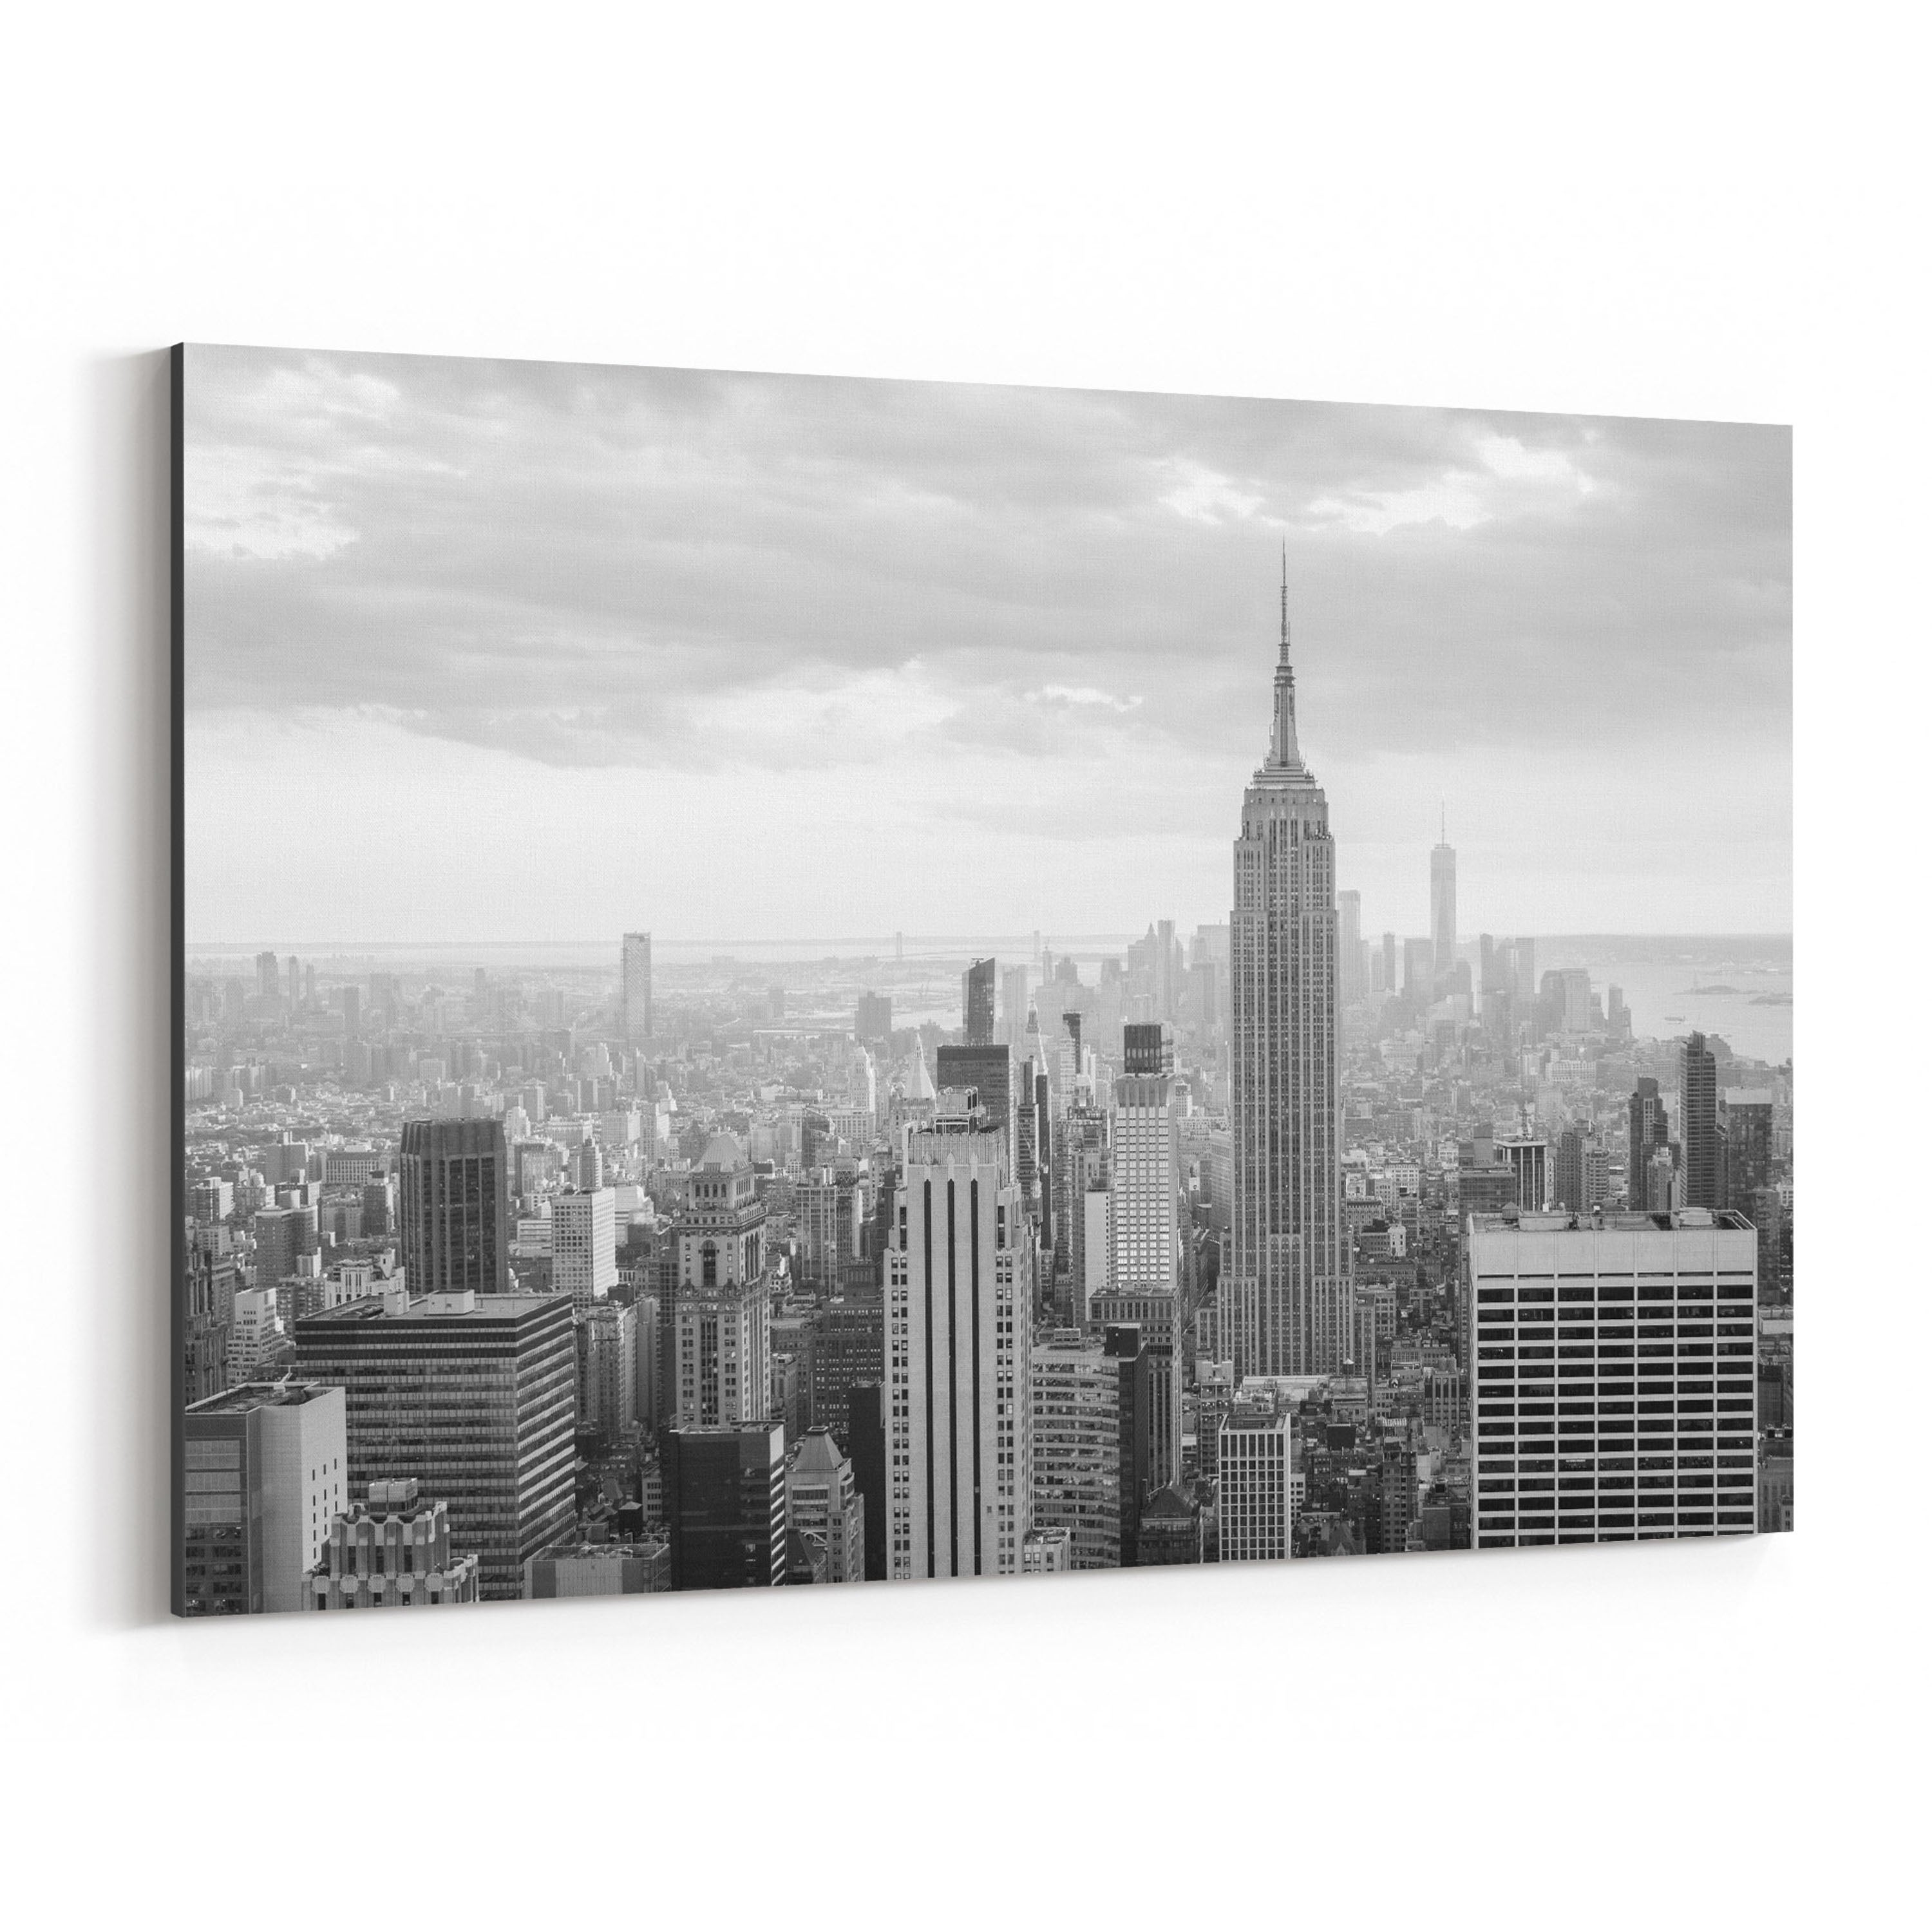 Noir Gallery Black White New York Skyline Nyc Canvas Wall Art Print